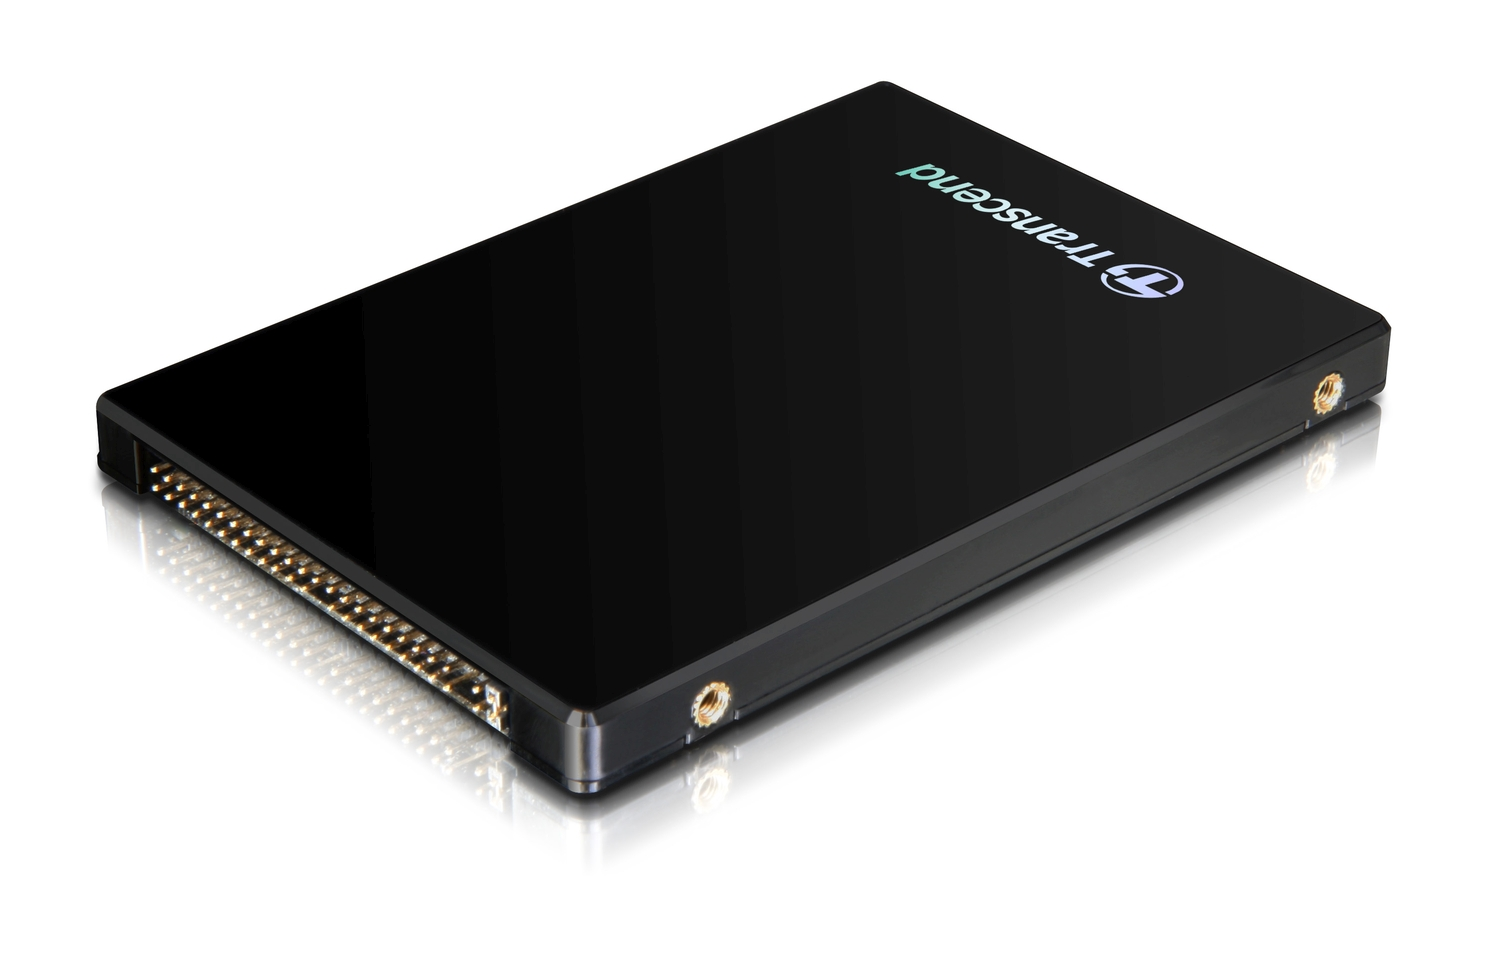 "Transcend SSD330 128GB SSD disk 2.5"" IDE PATA, MLC - TS128GPSD330"